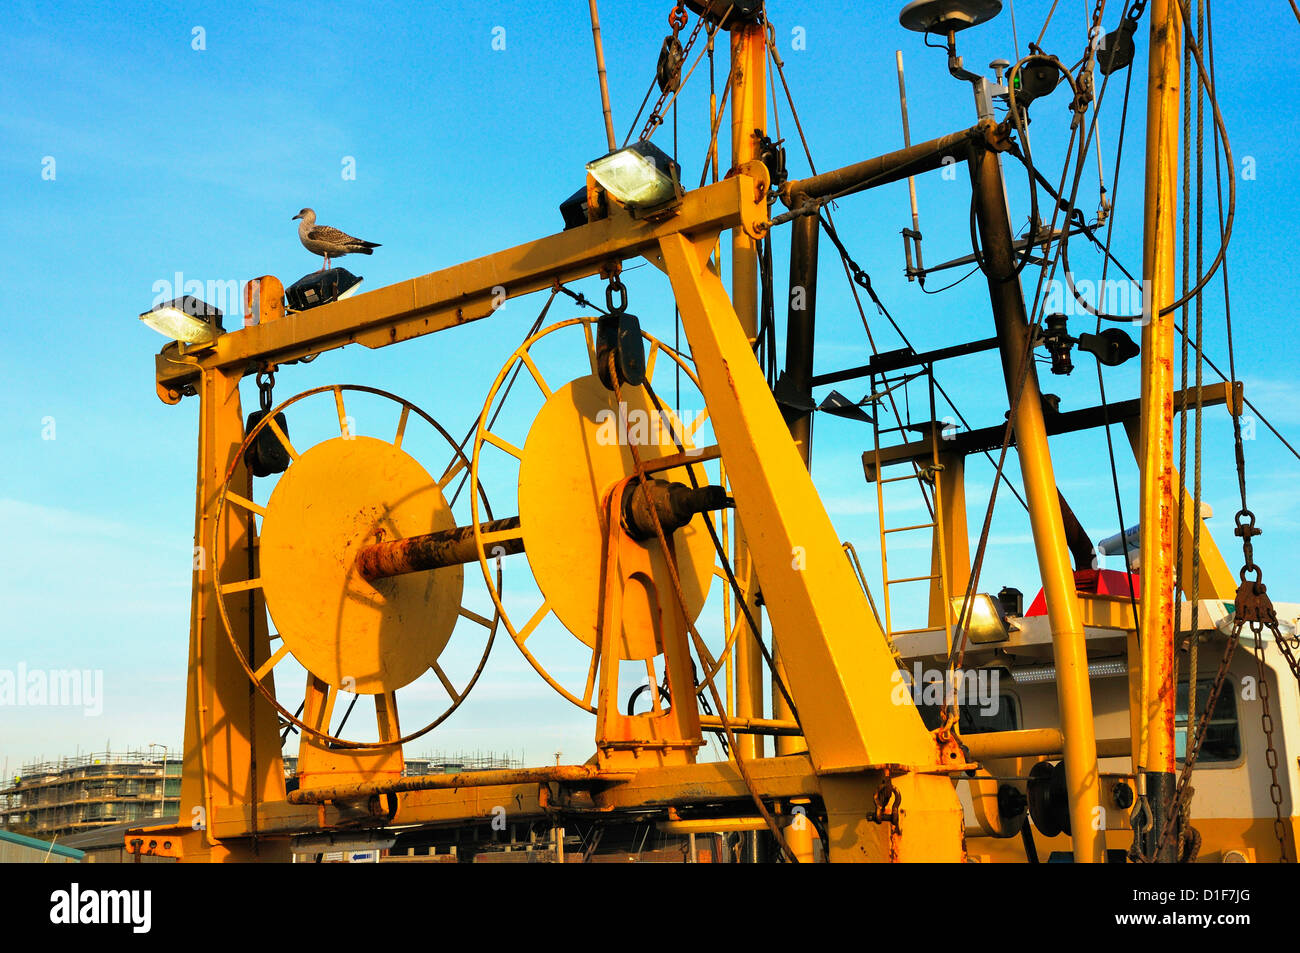 Fishing trawler winch and rigging - Stock Image